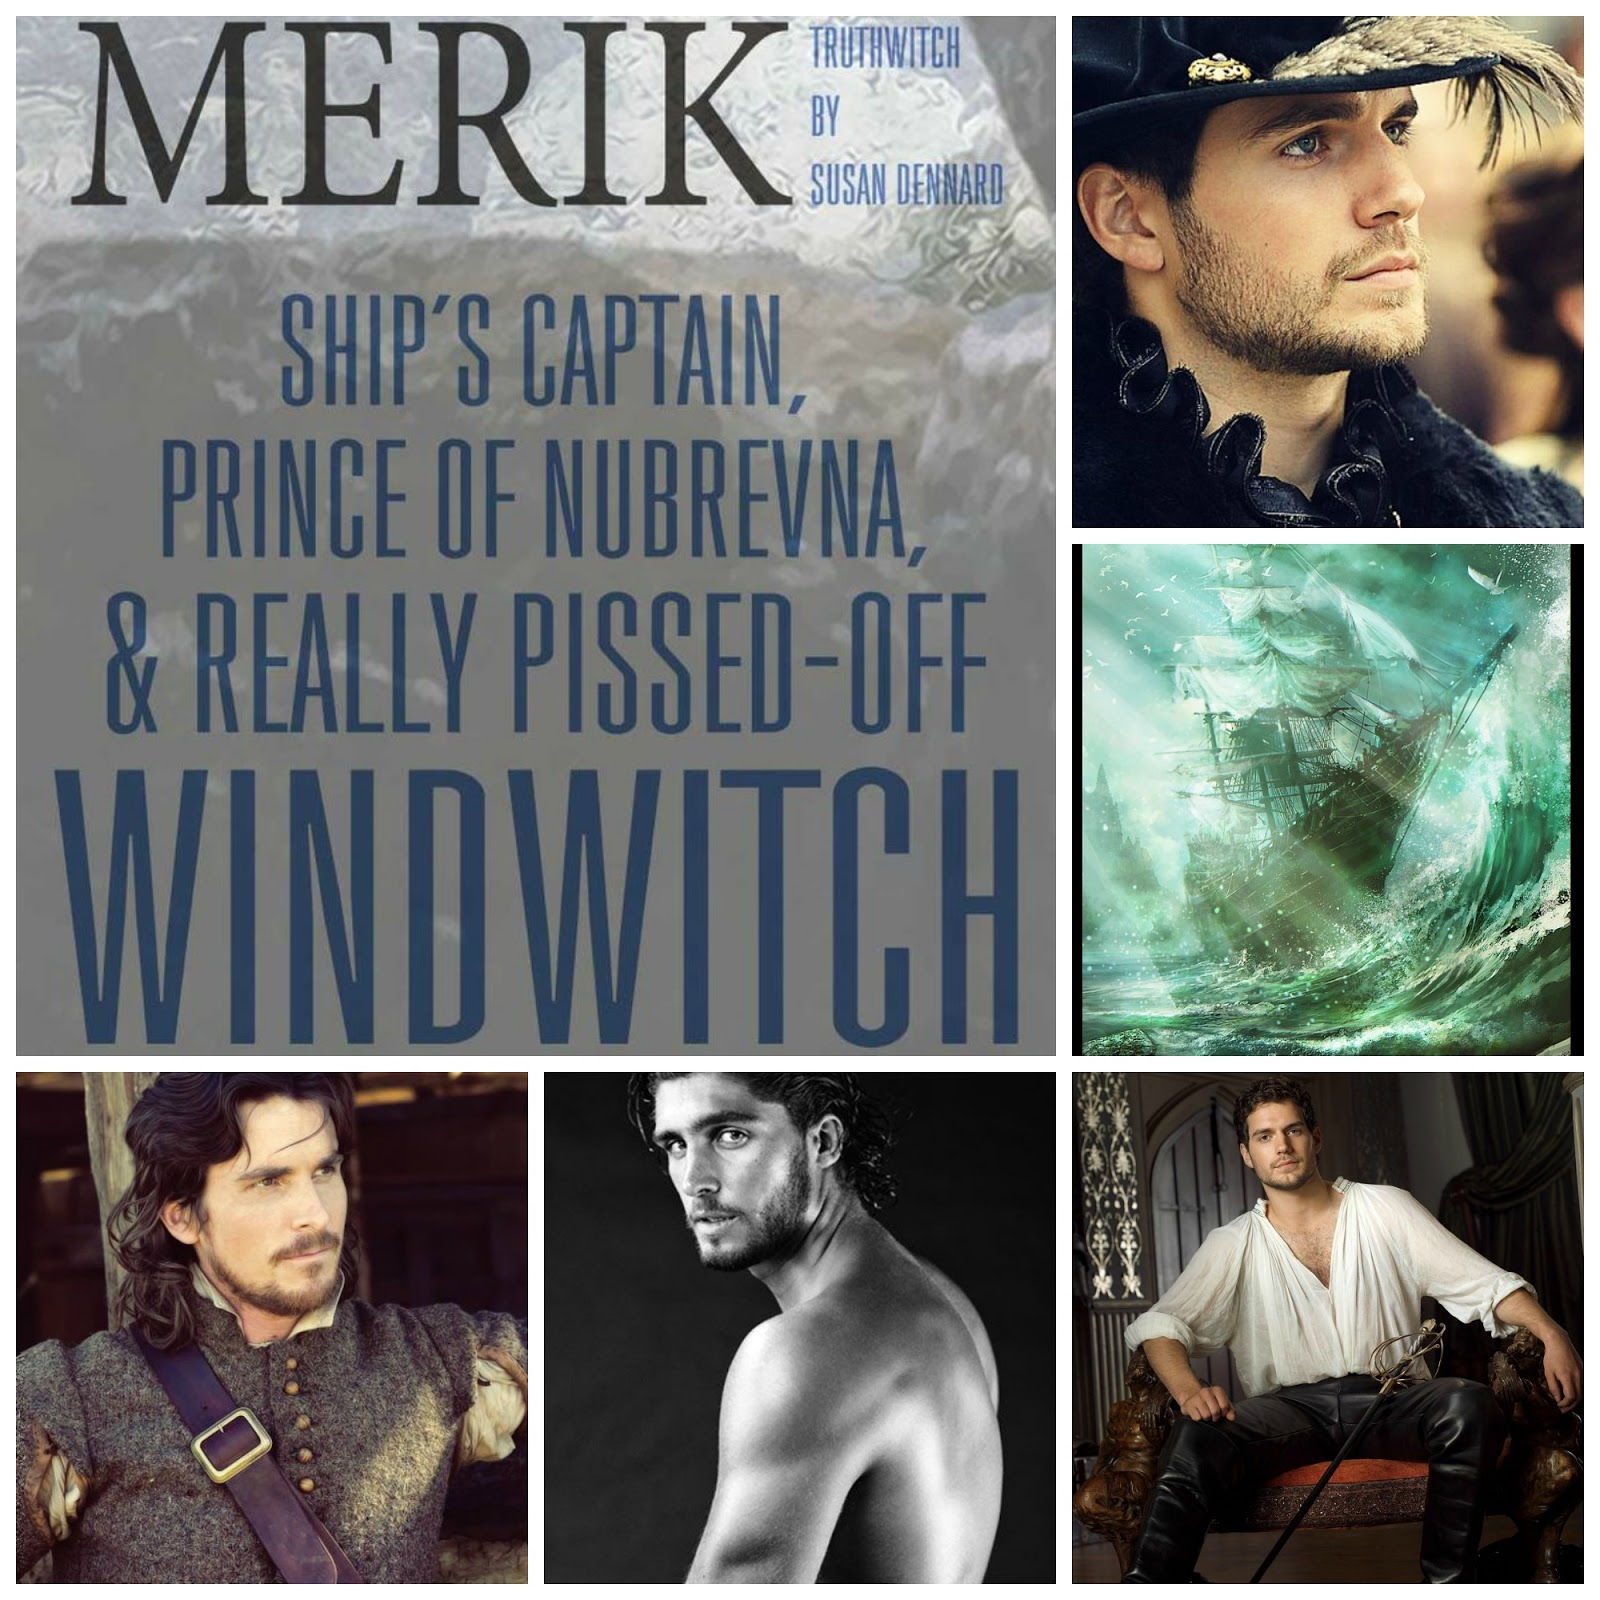 Image result for merrick truthwitch